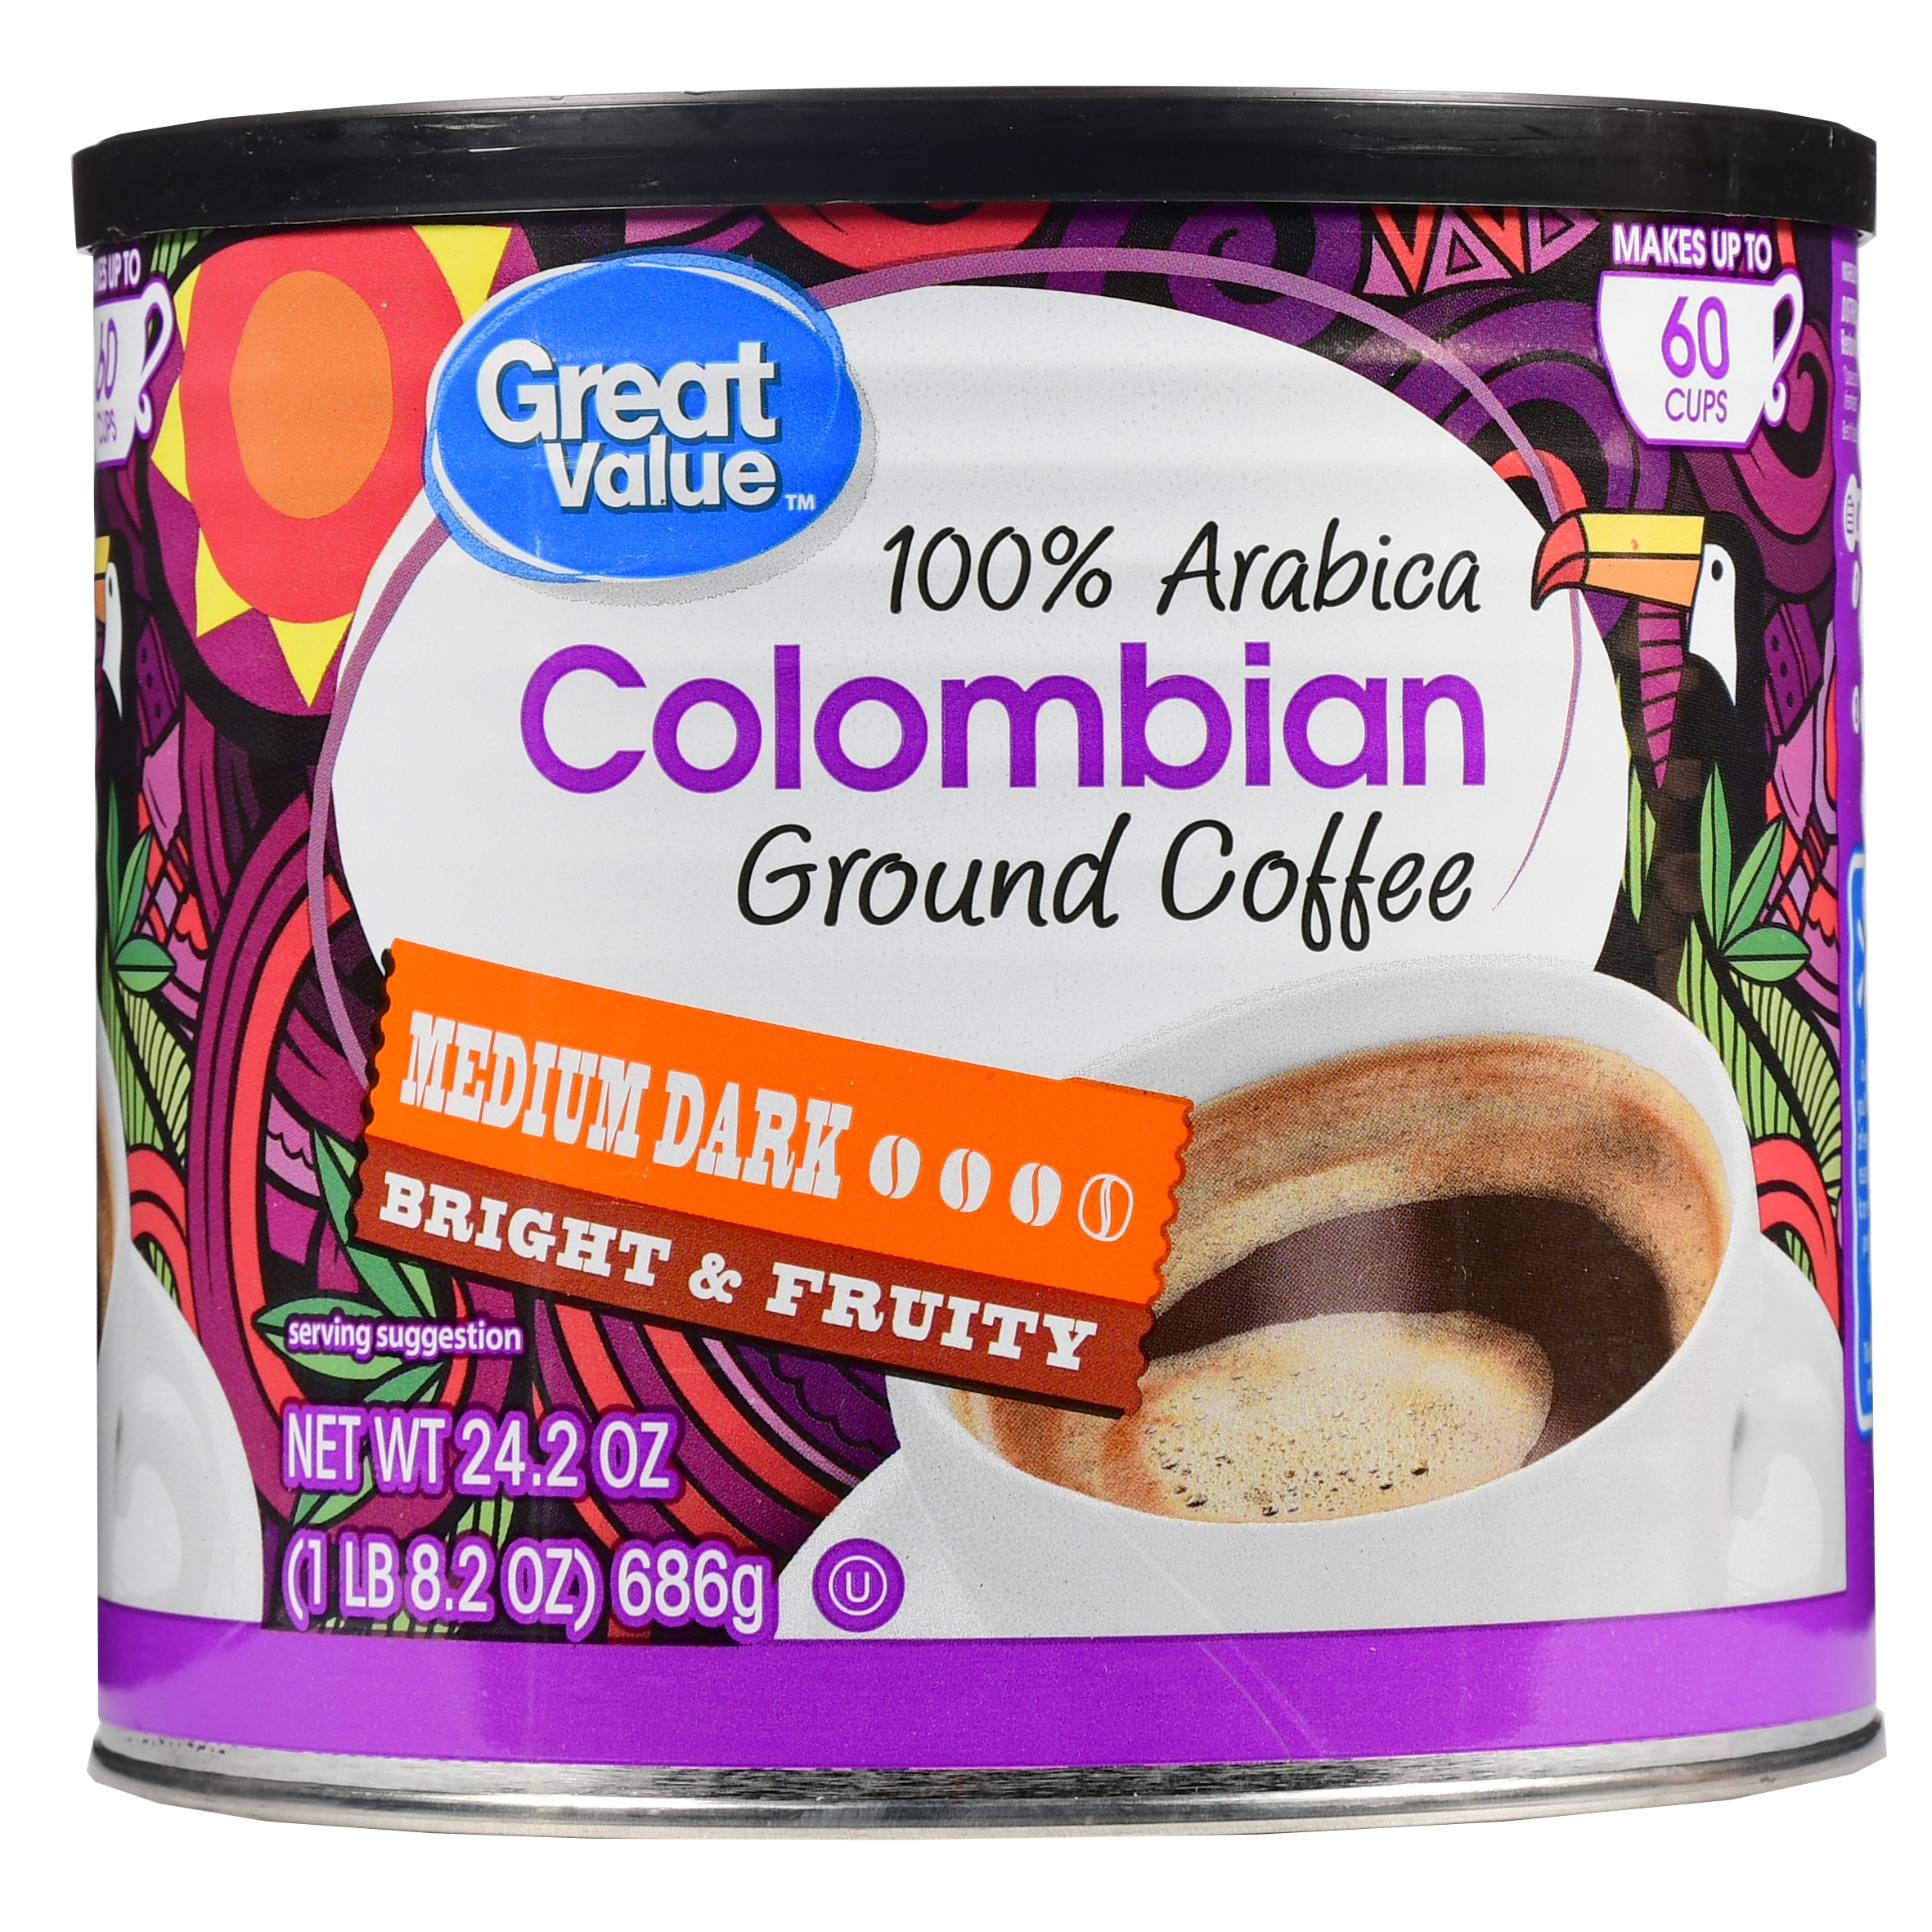 Great Value 100% Colombian Ground Coffee, Medium Dark Roast, 24.2 oz